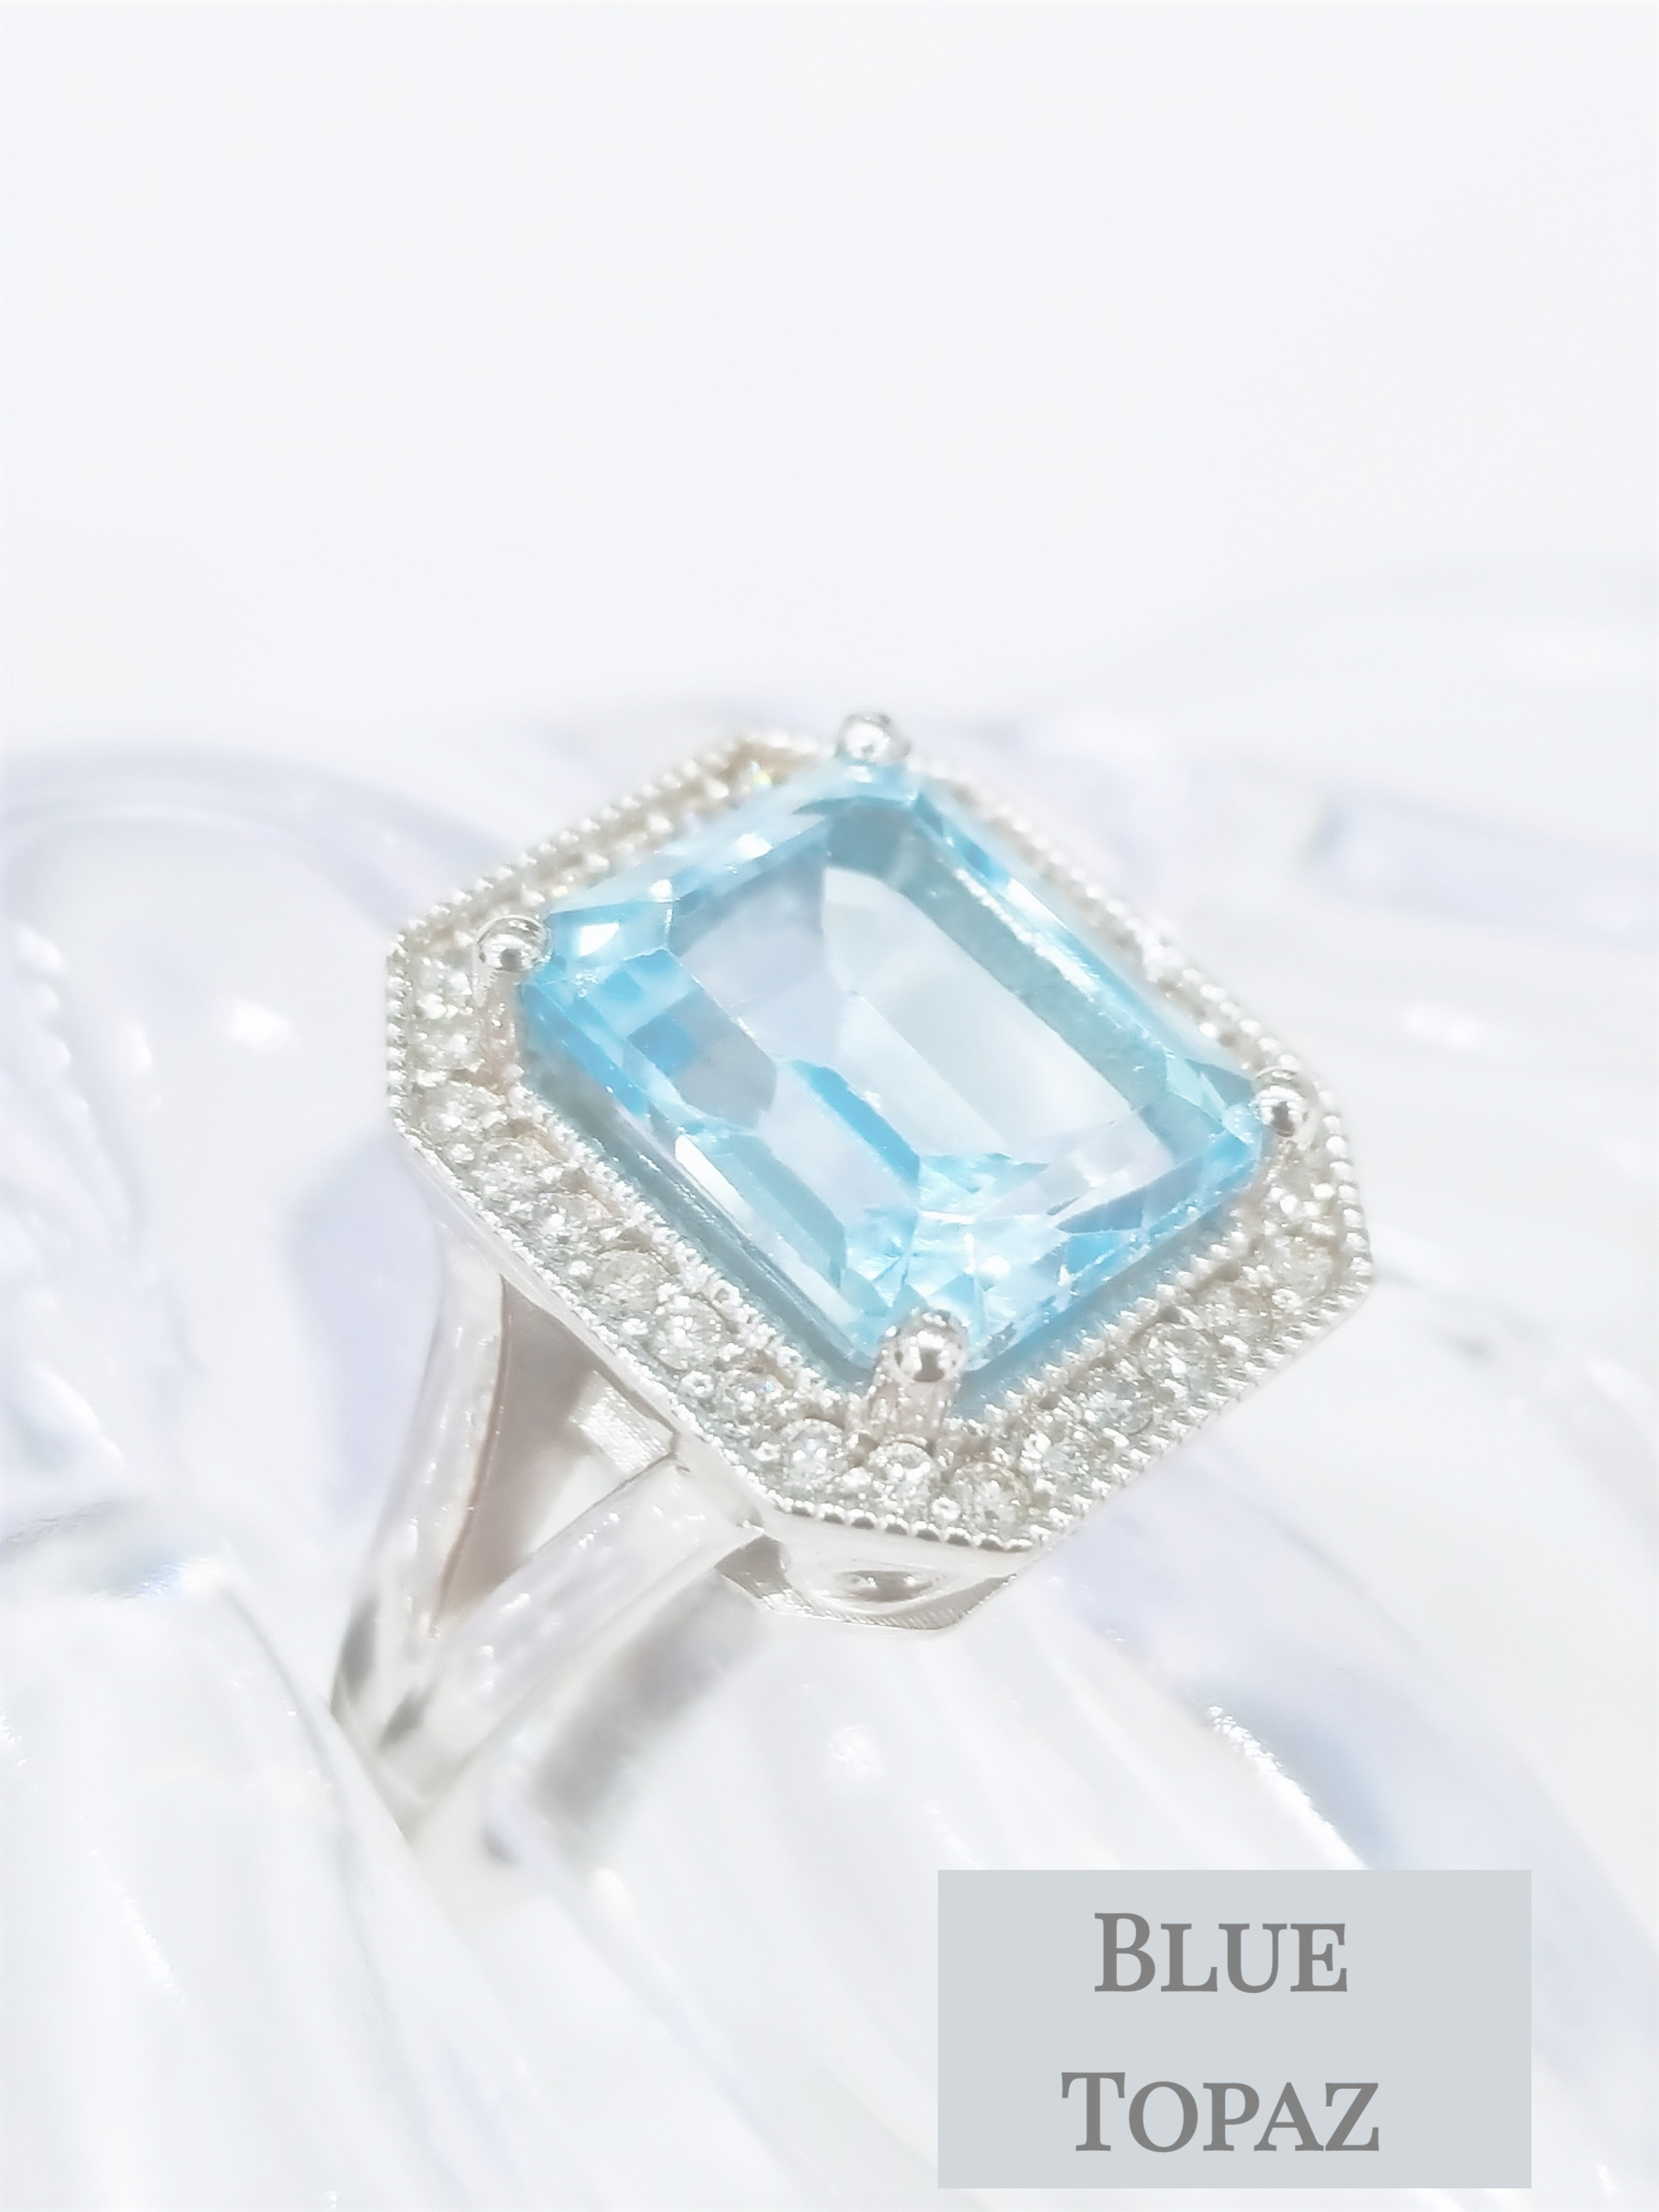 Blue Topaz diamonds ring